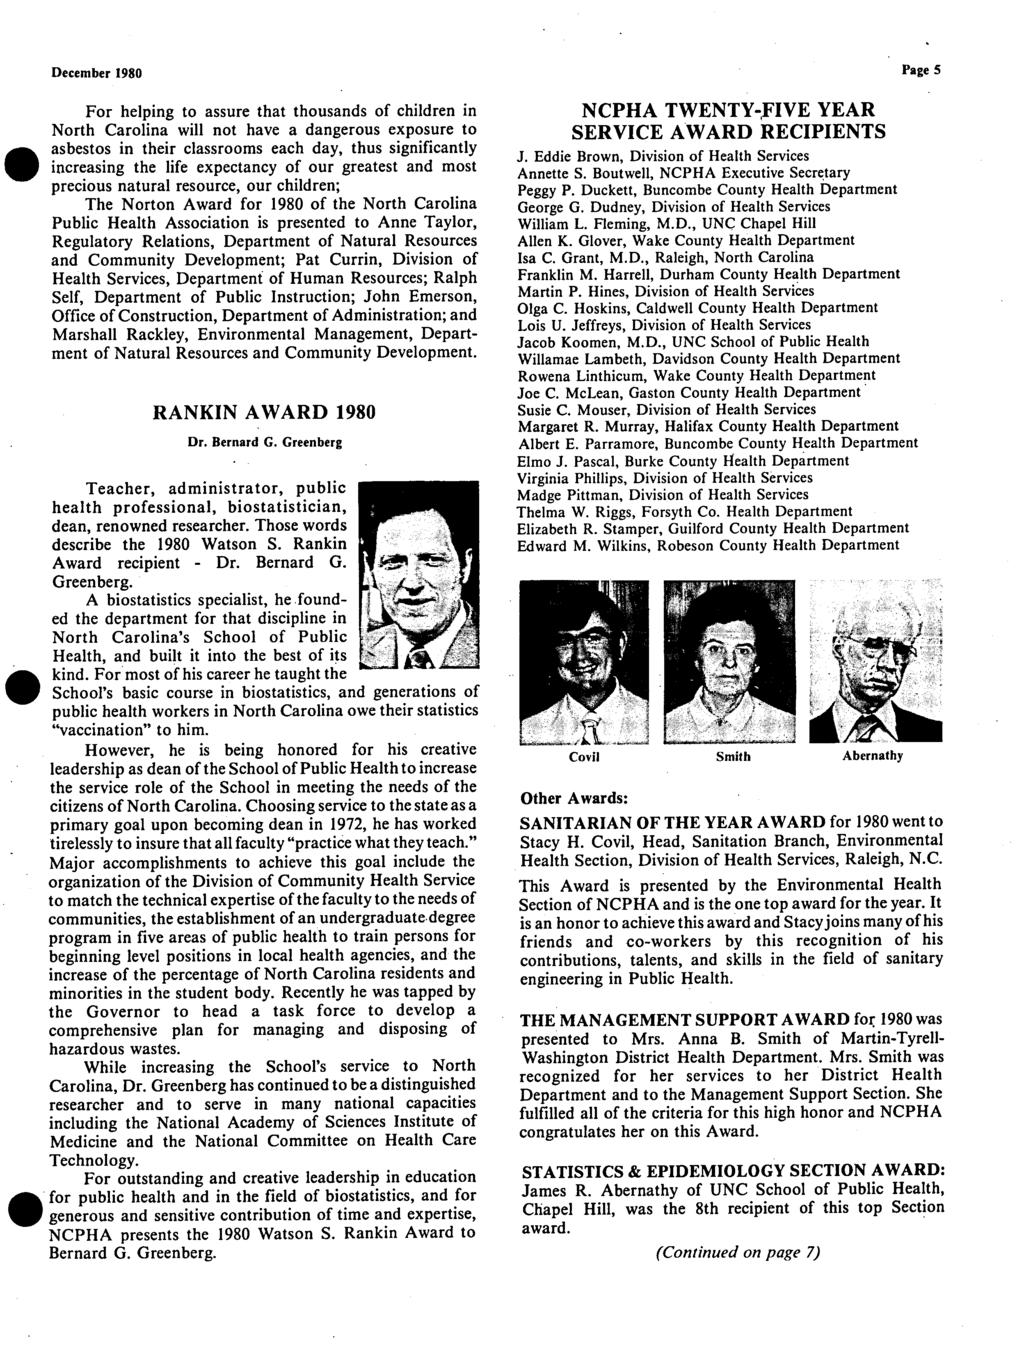 f December 1980 Page 5 For helping to assure that thousands of children in North Carolina will not have a dangerous exposure to asbestos in their classrooms each day, thus significantly increasing